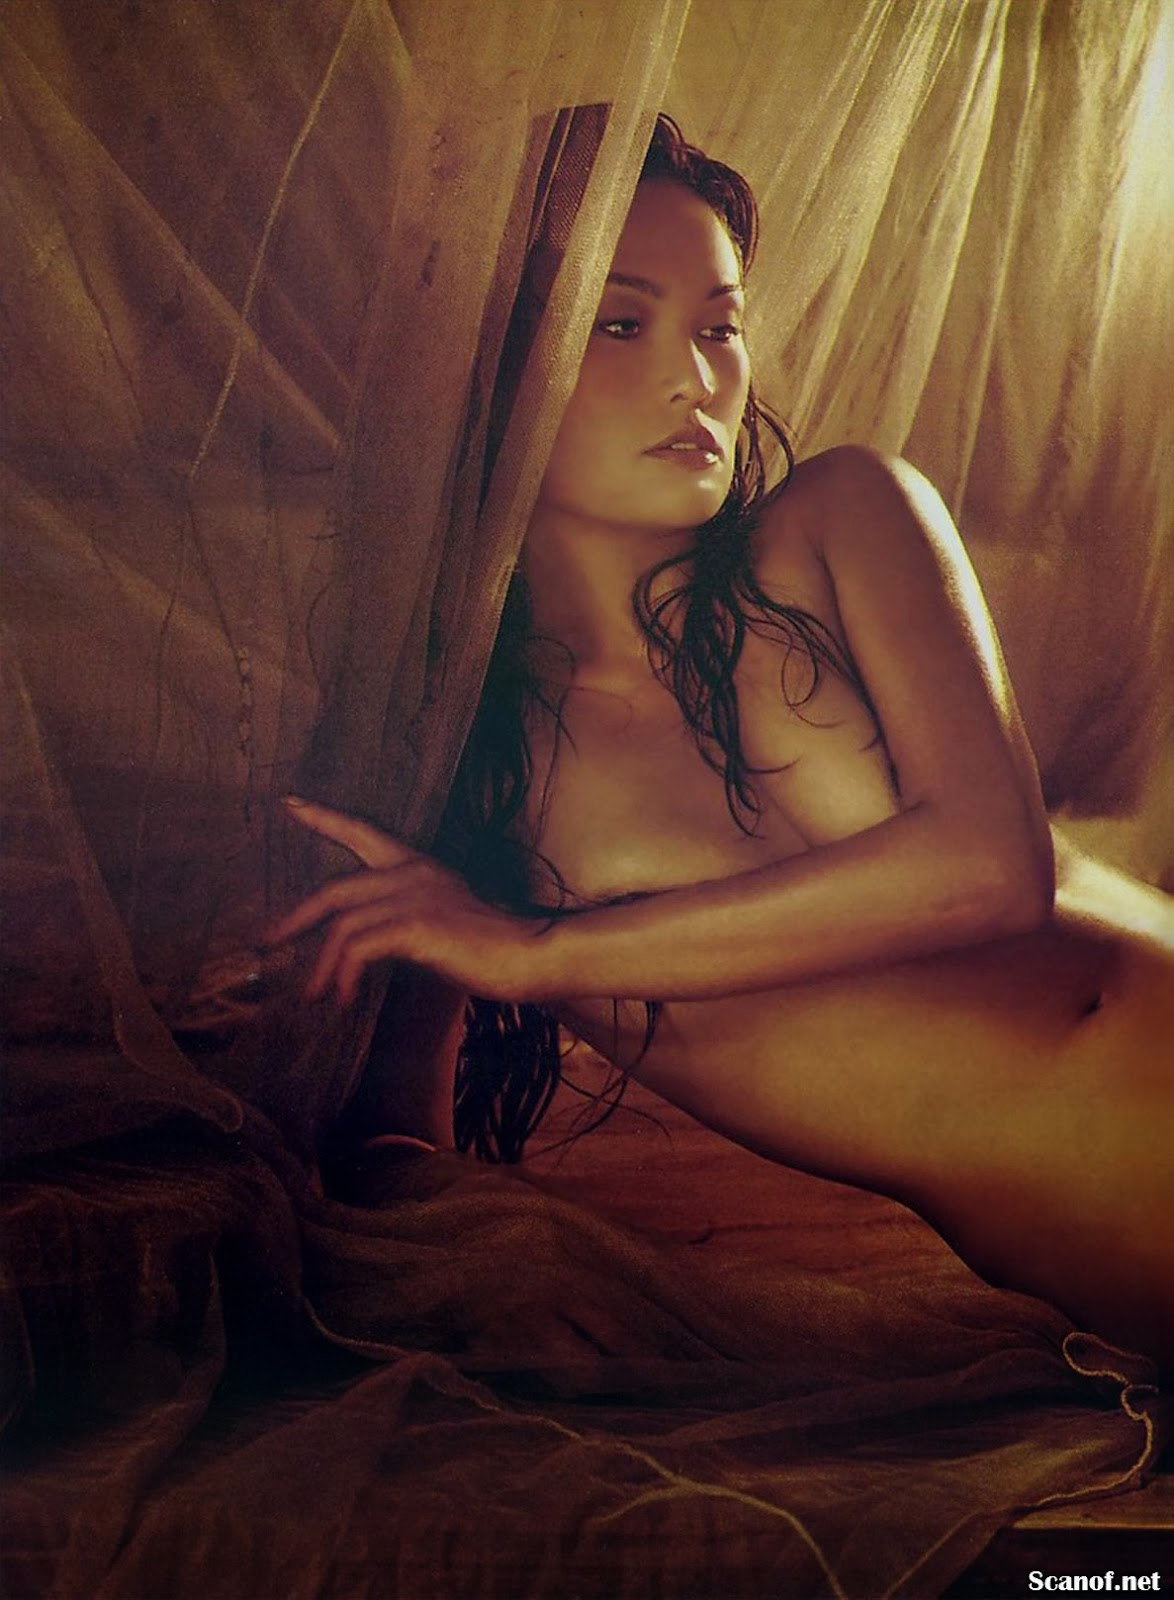 Tia carrere playboy